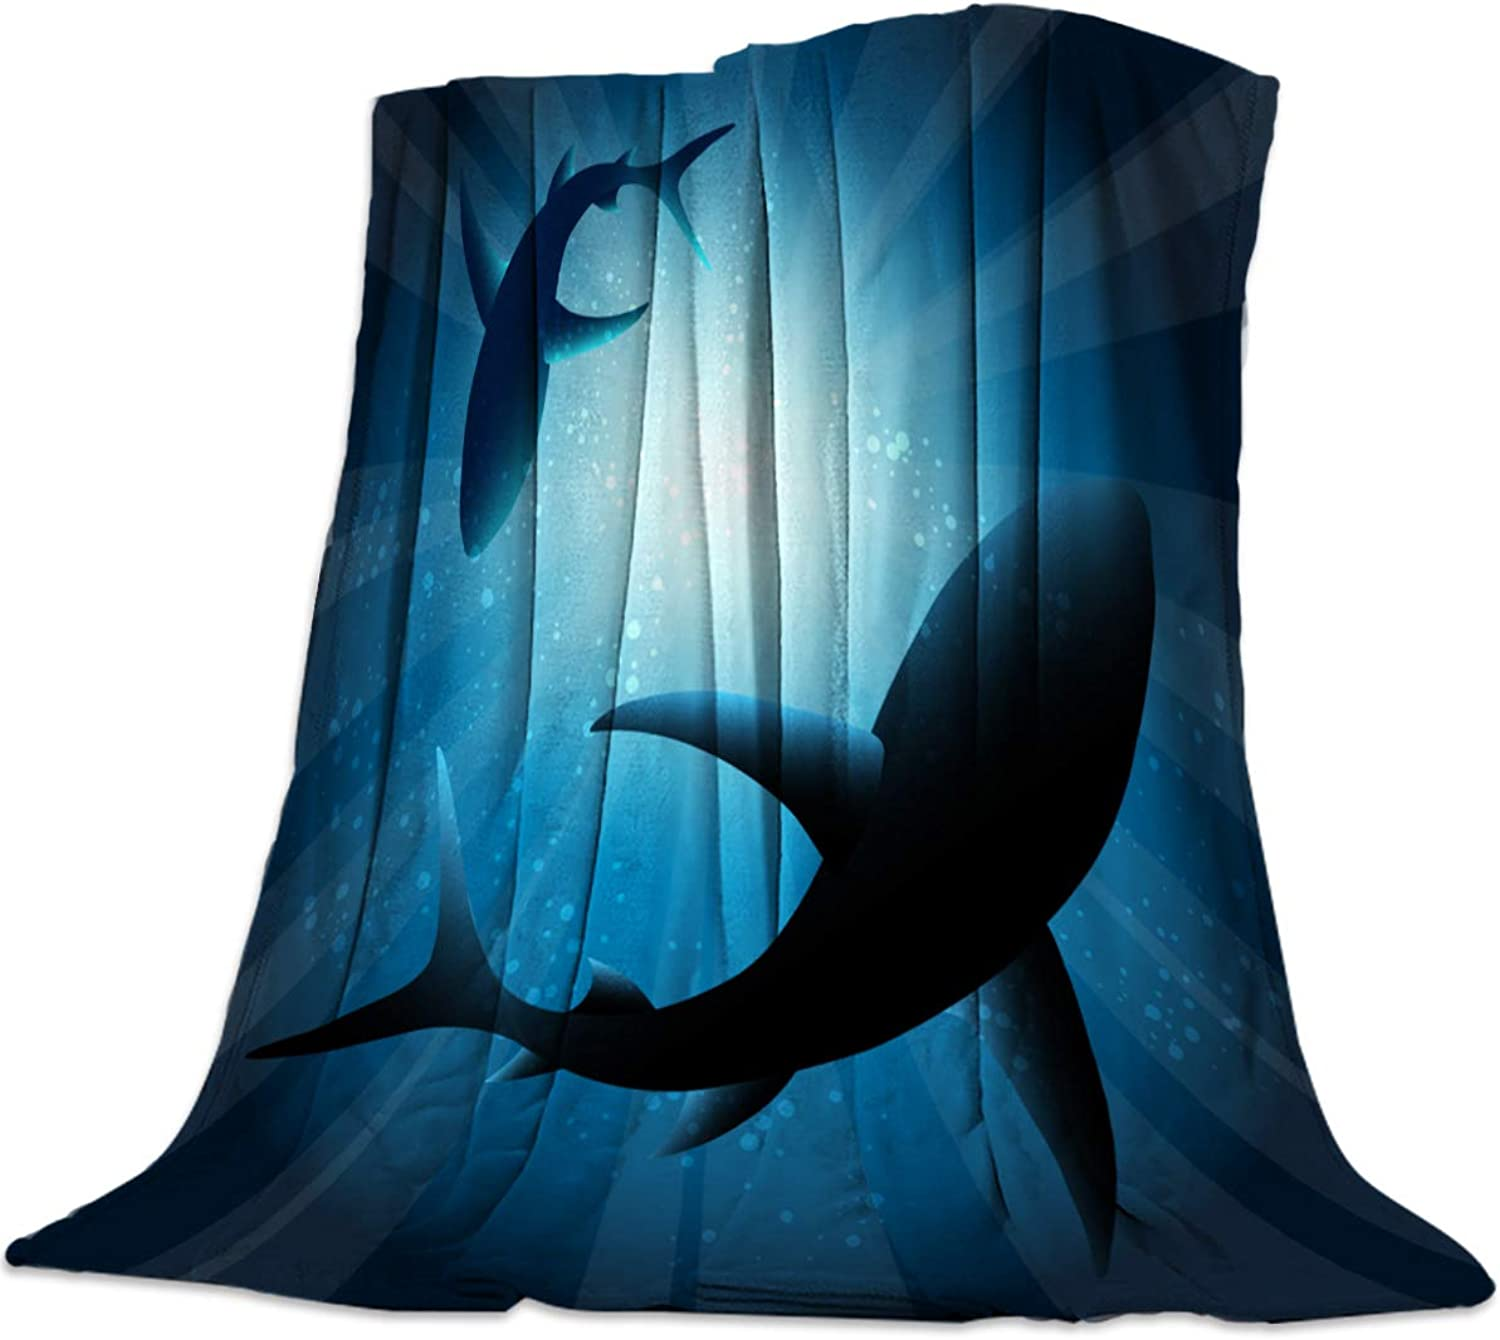 YEHO Art Gallery 39x49 Inch Flannel Fleece Bed Blanket Soft Throw-Blankets for Girls Boys,bluee Shade of Sharks Pattern,Cozy Lightweight Blankets for Bedroom Living Room Sofa Couch